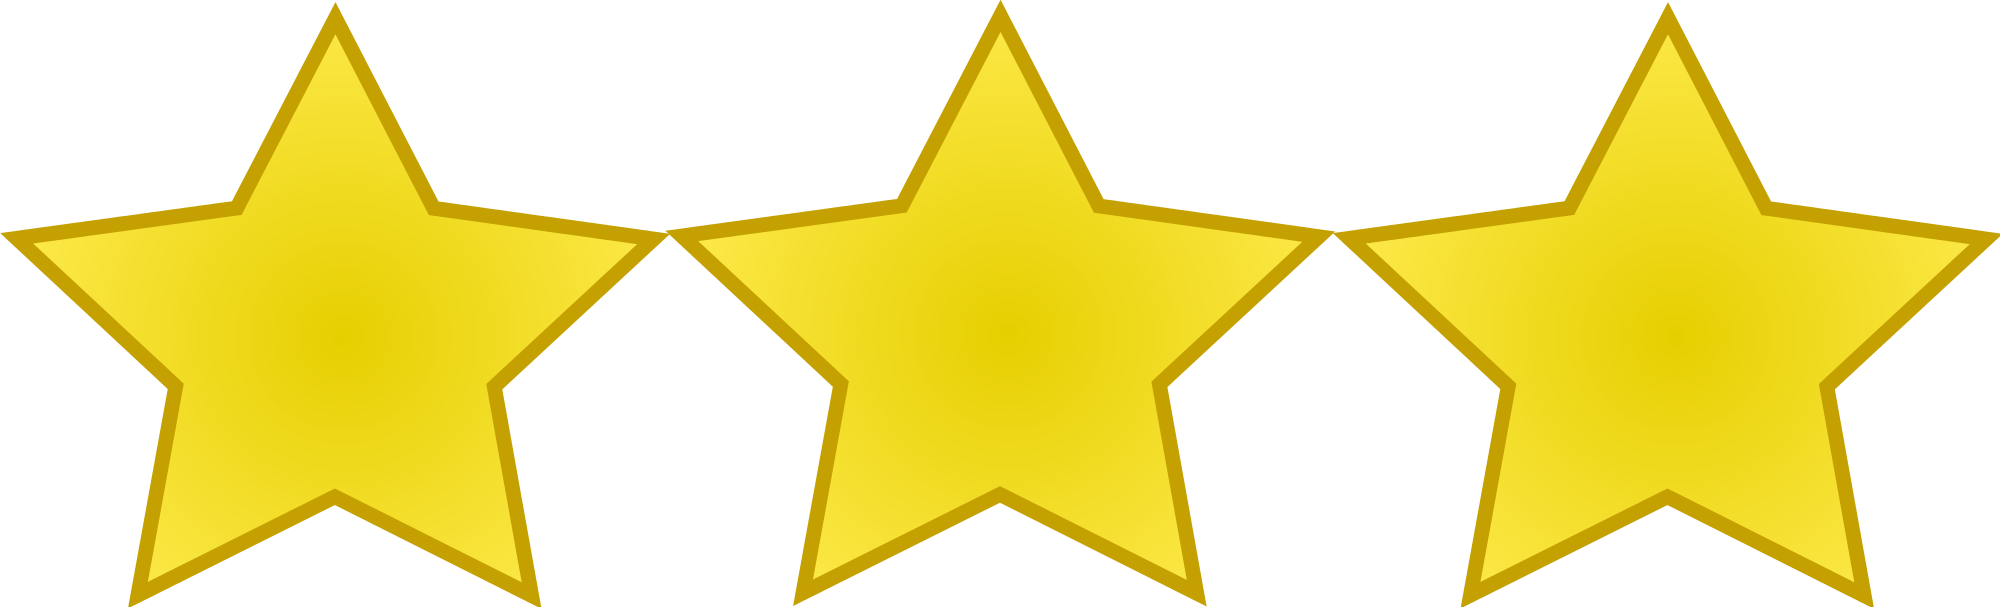 3 stars png